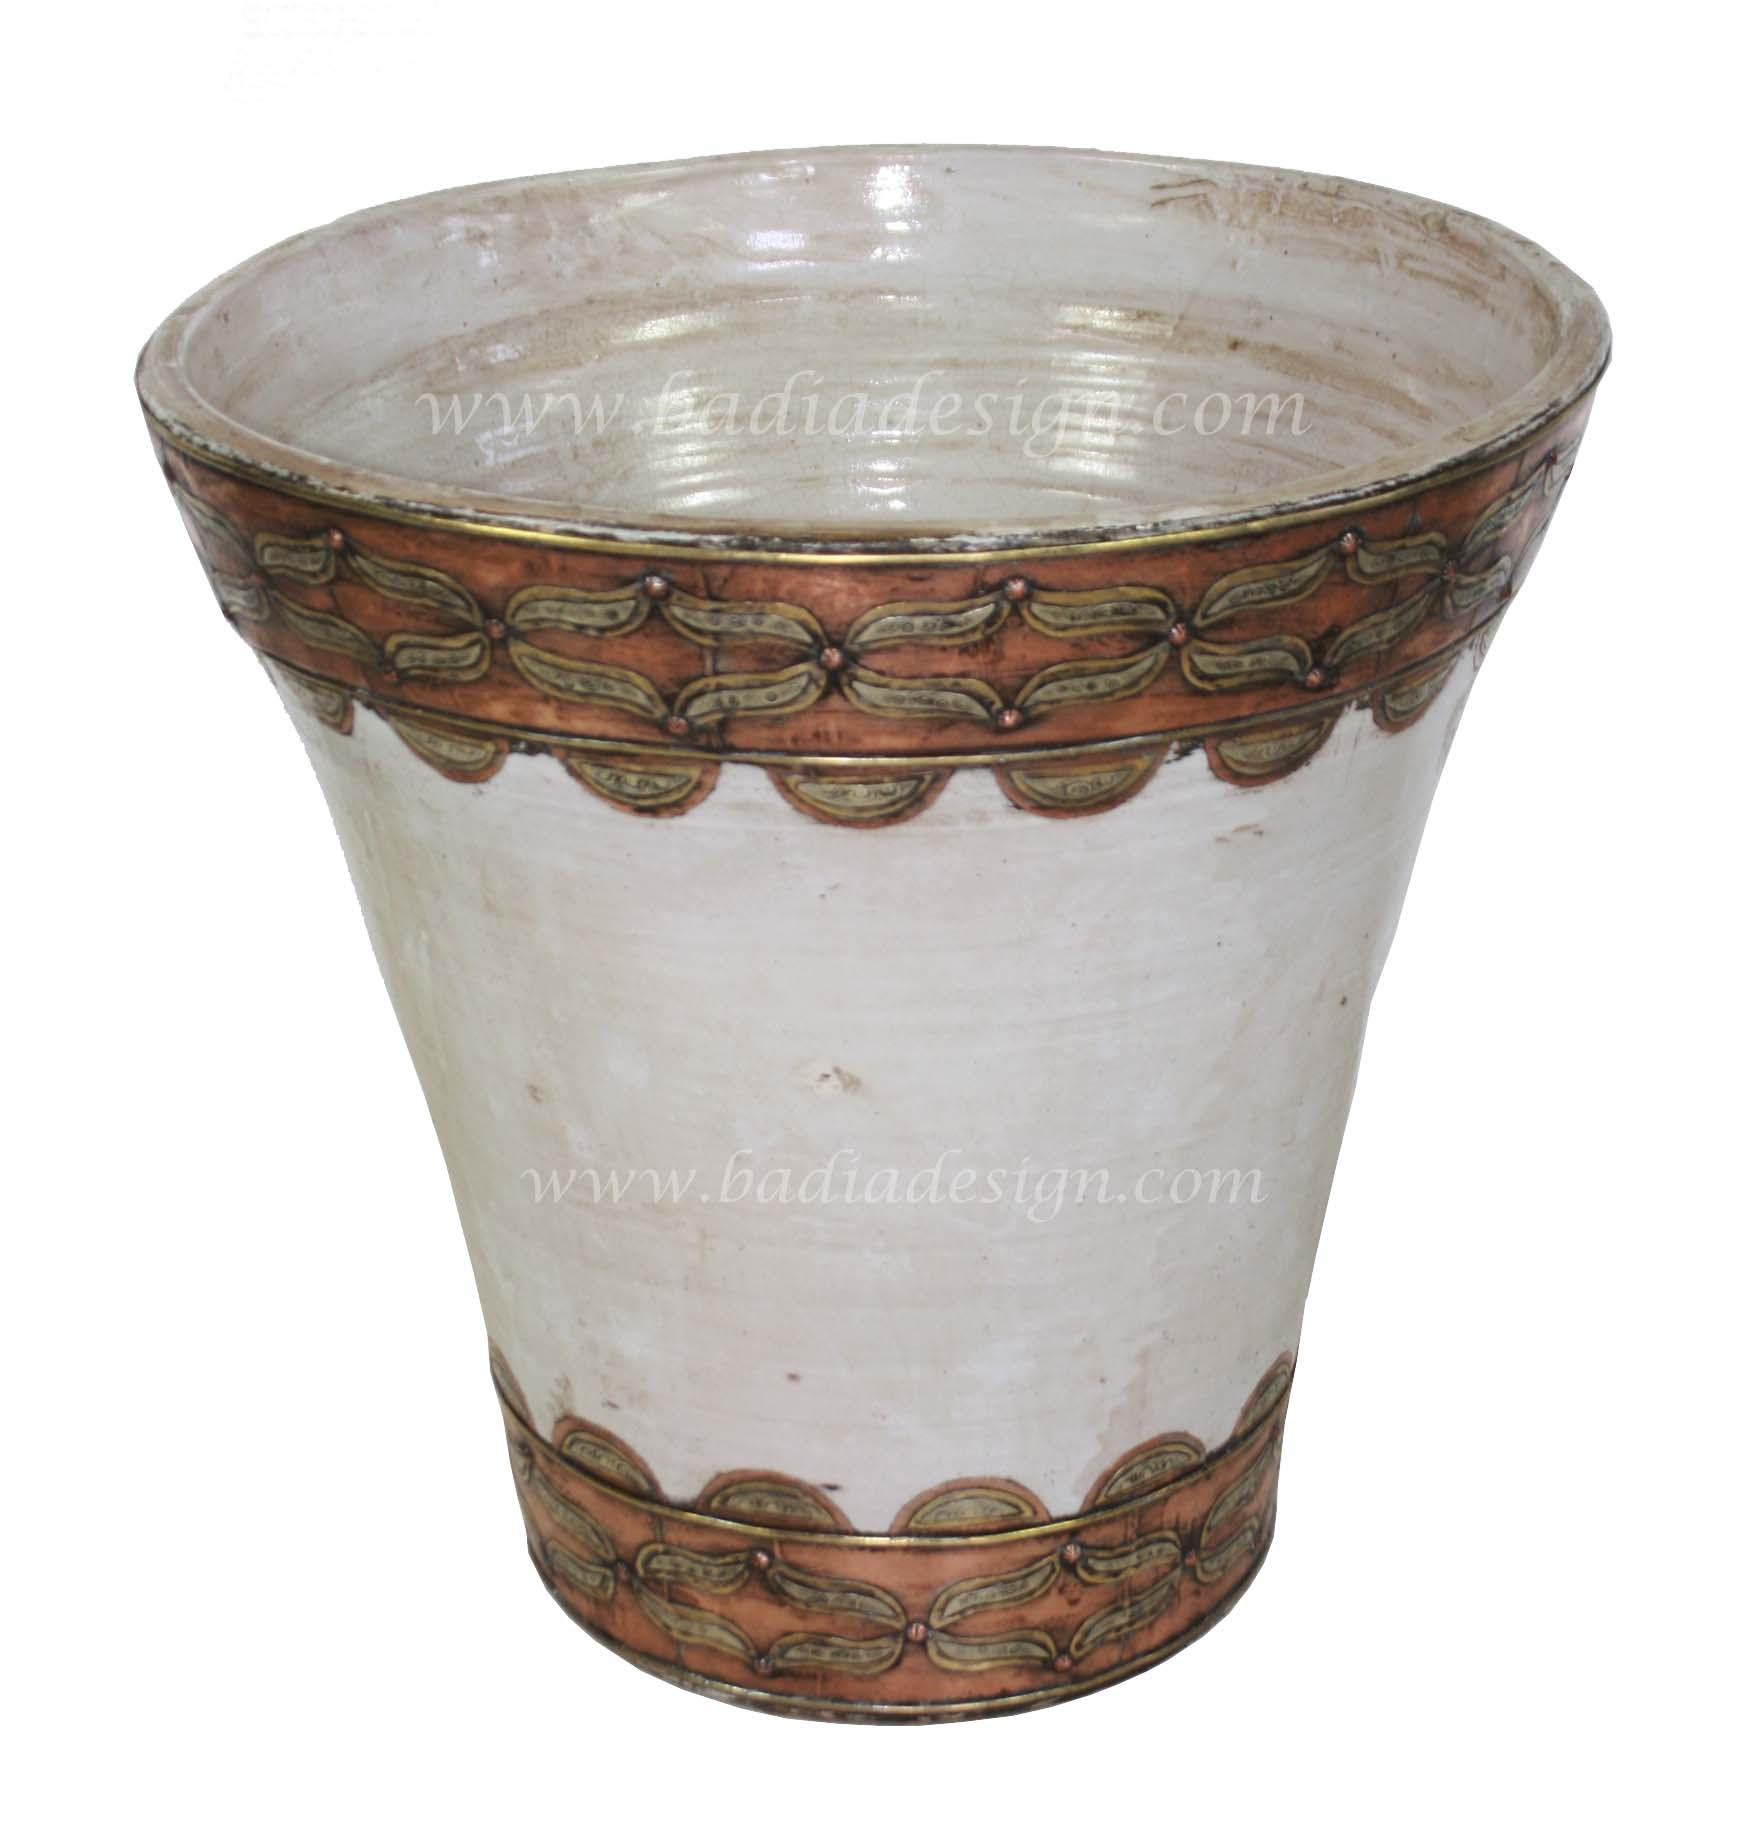 moroccan-metal-and-ceramic-vase-va072-1.jpg